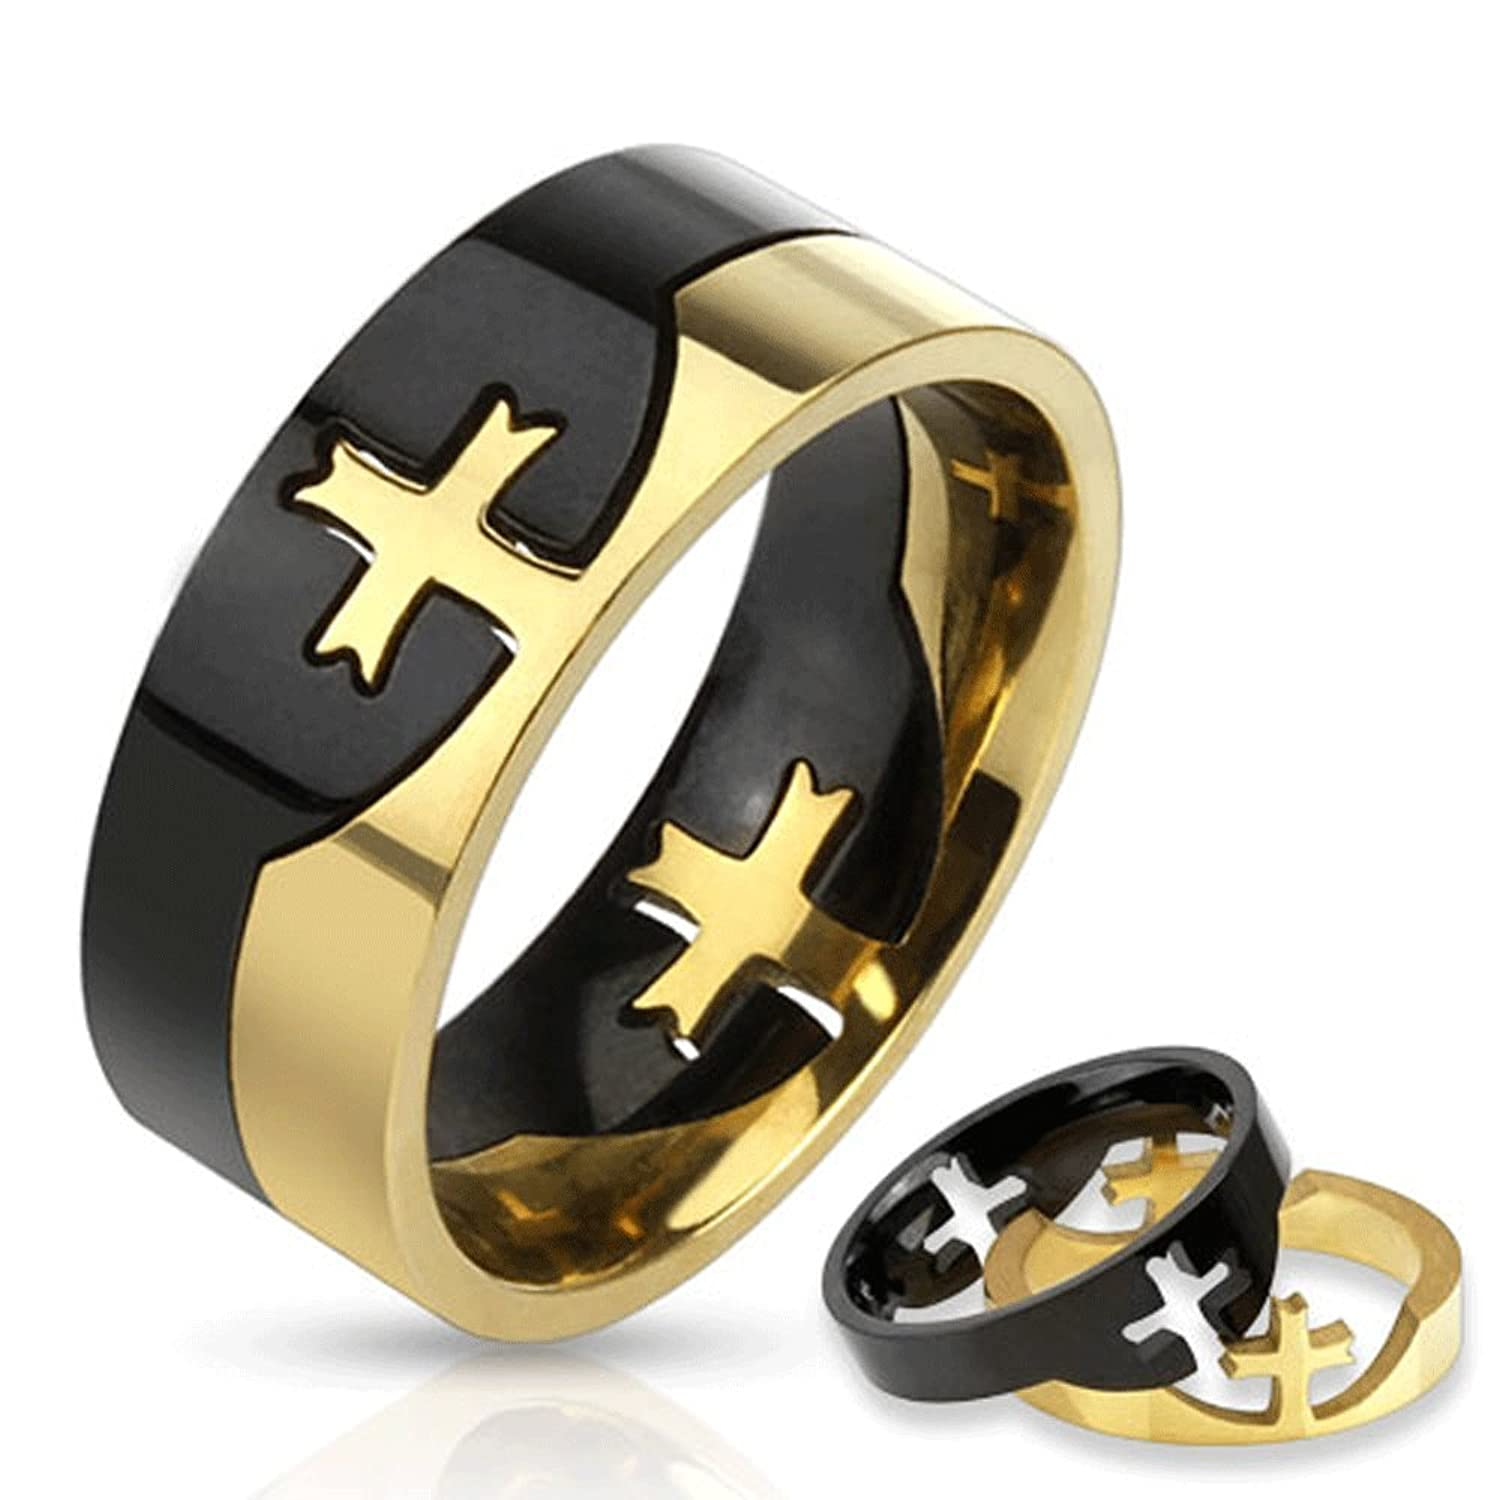 STR-0159 Stainless Steel Two Tone Cross Puzzle Ring